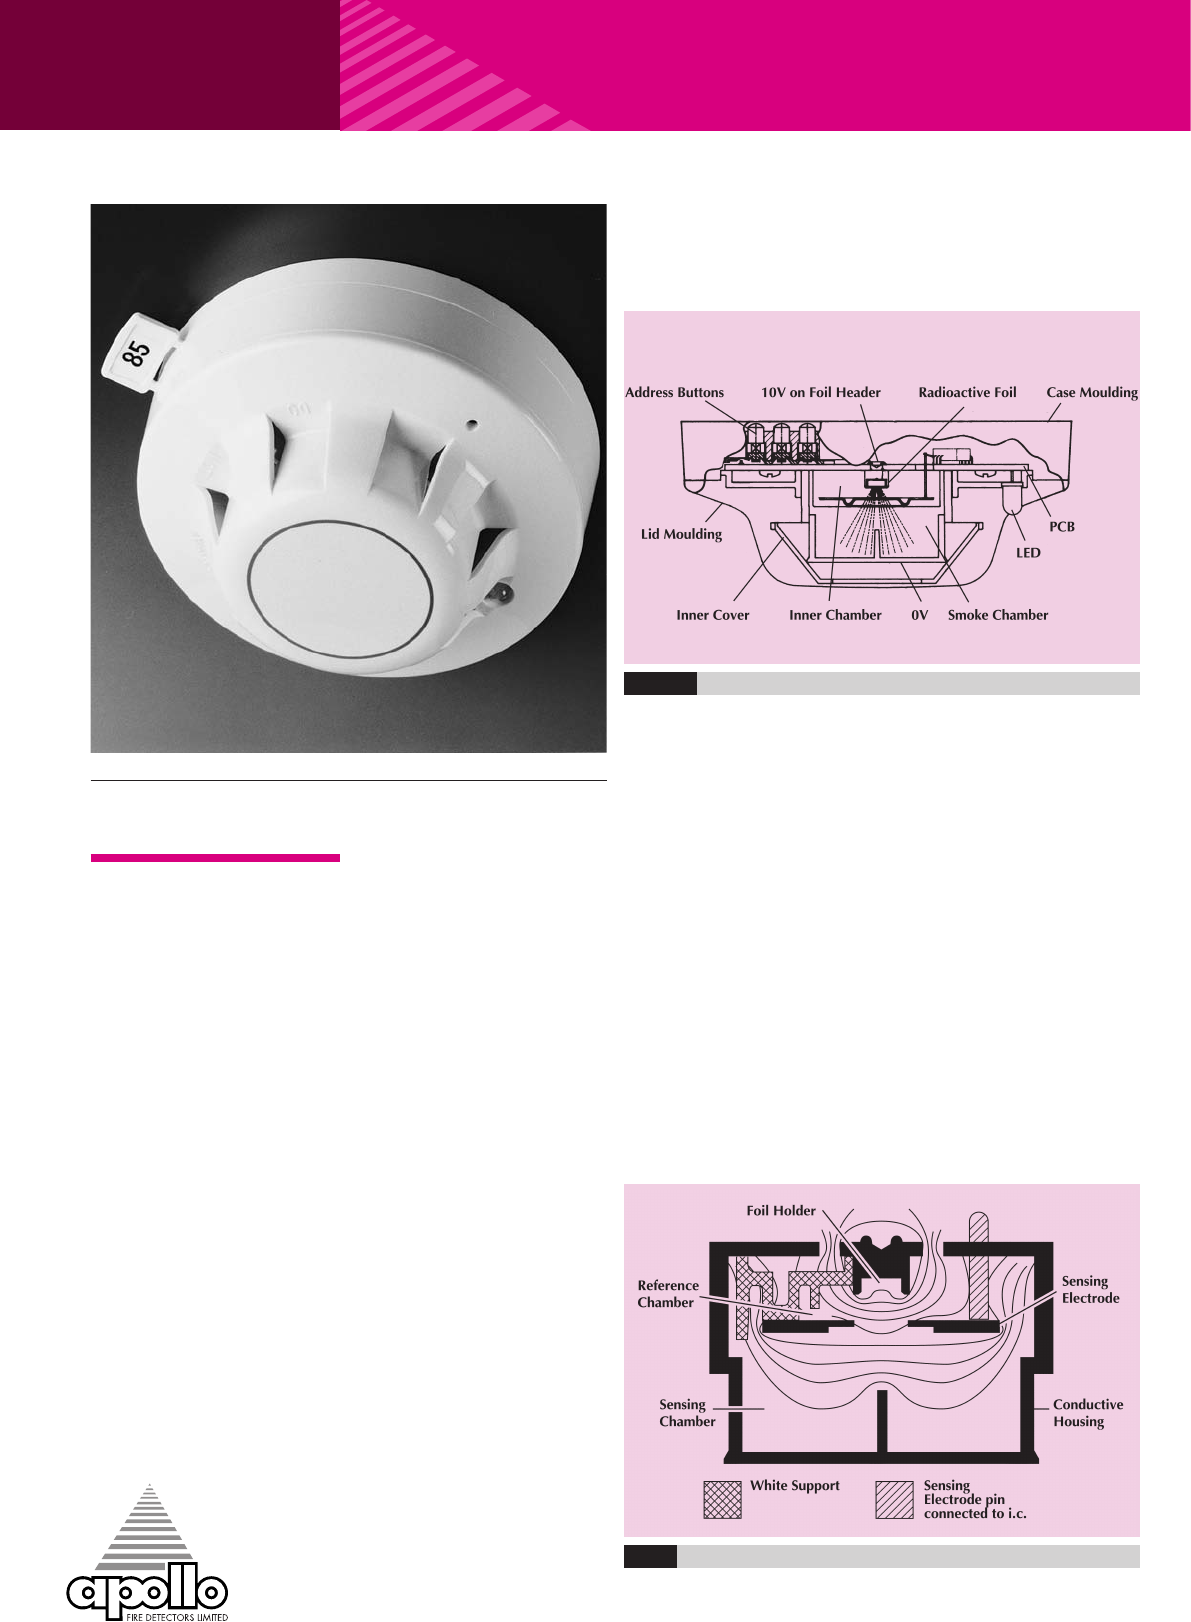 Apollo Xp95 Users Manual Smoke Detector Wiring Diagram Page